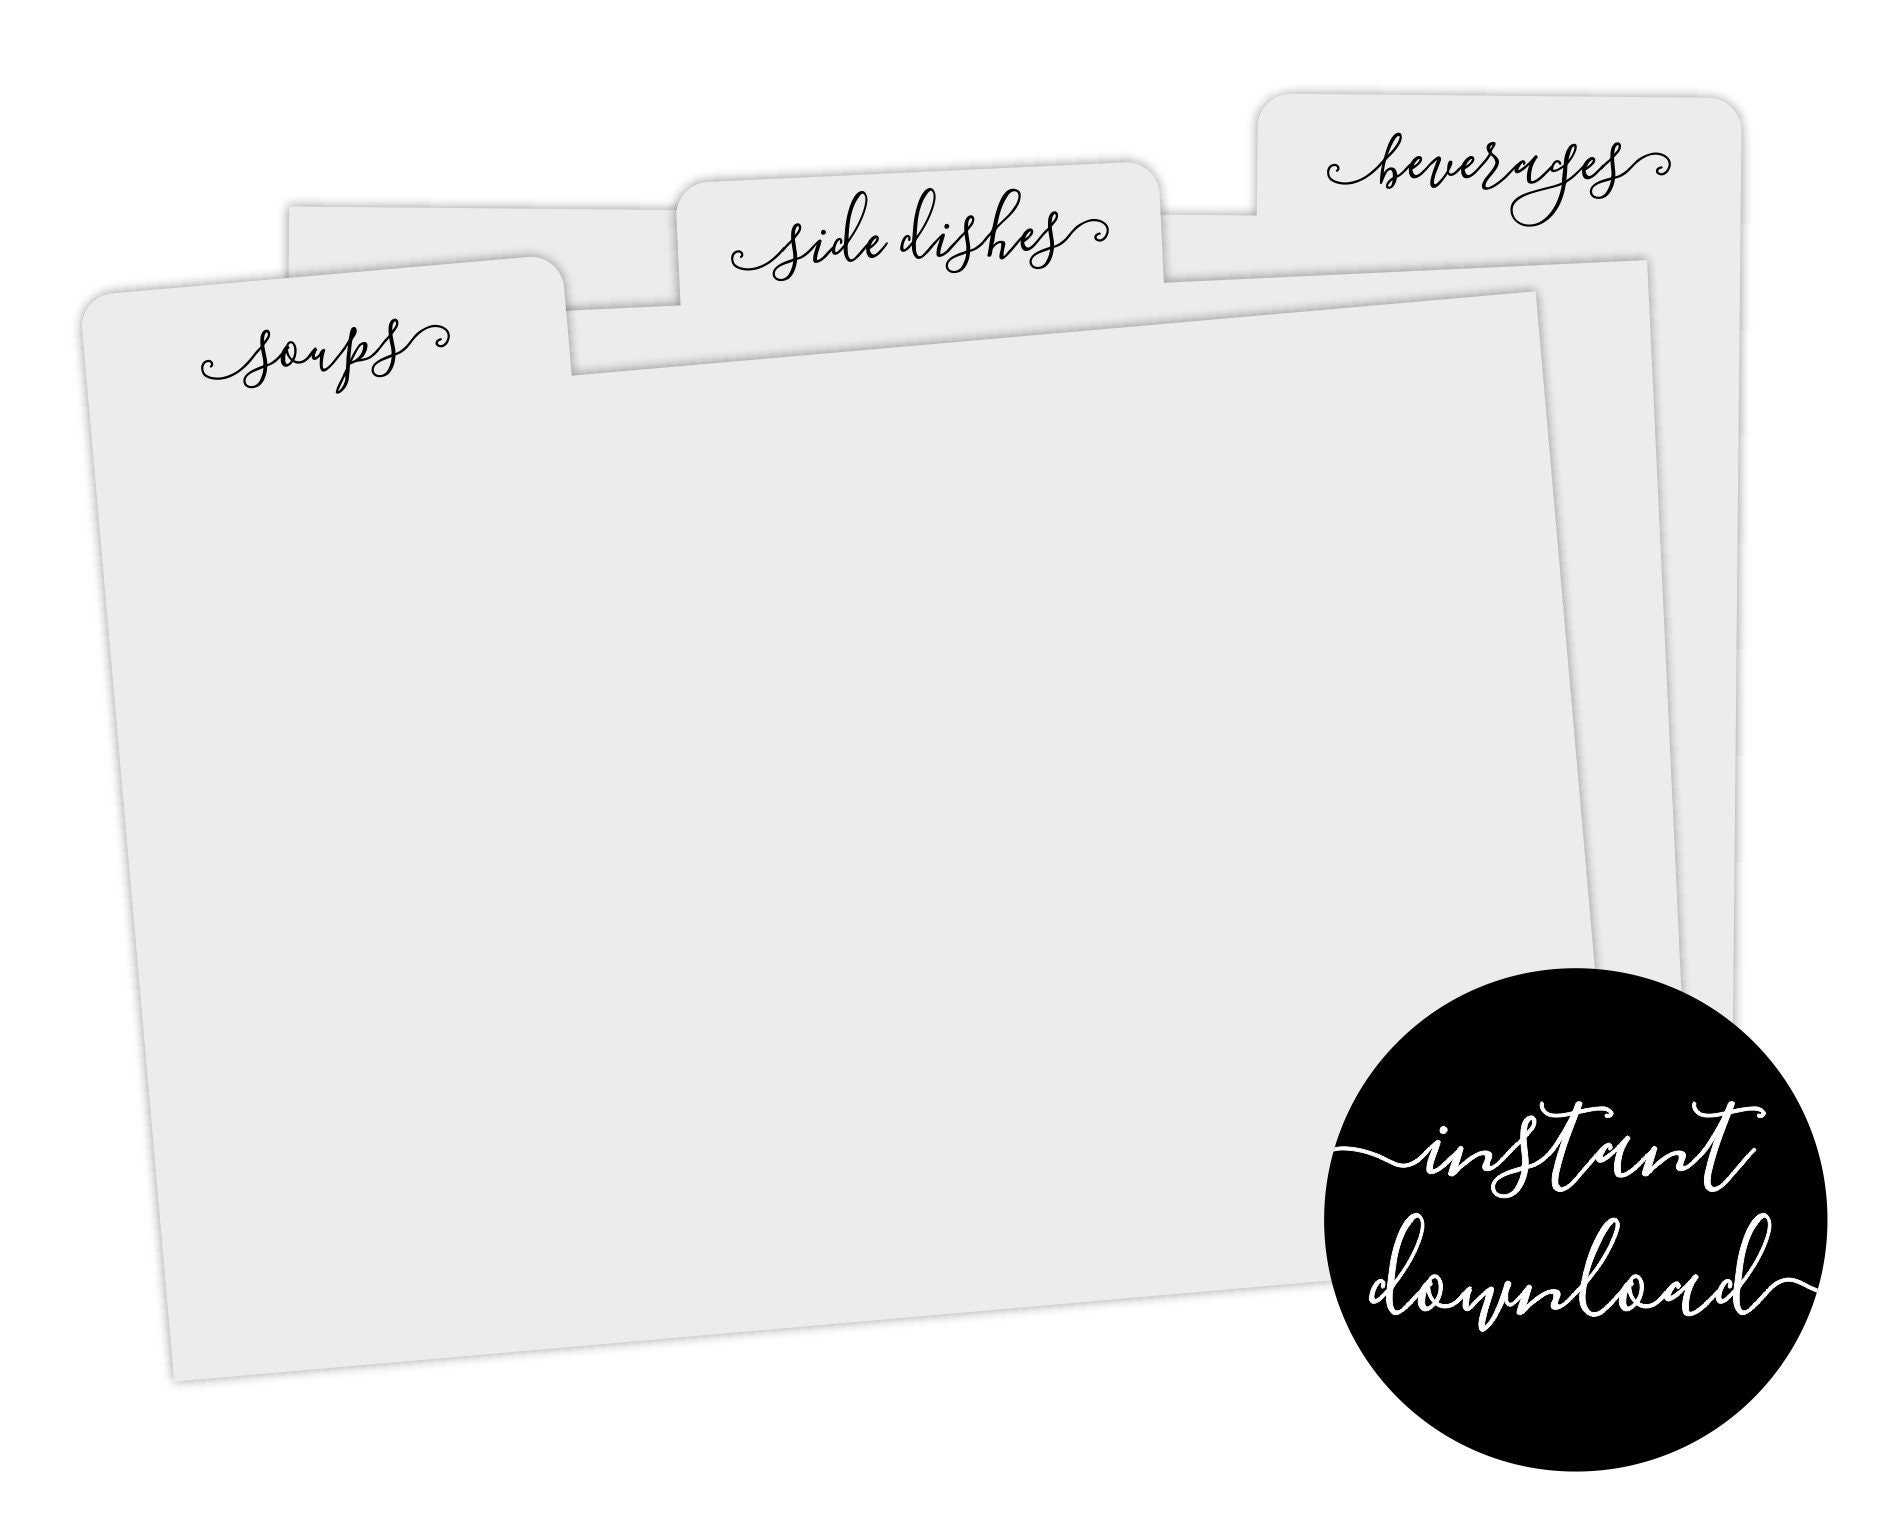 Editable Recipe Card Divider Template - Printable Index Card Size 21x21 21x21  21x21 Easy Category for Recipe Box Digital File Instant Download PDF With Regard To Blank Index Card Template